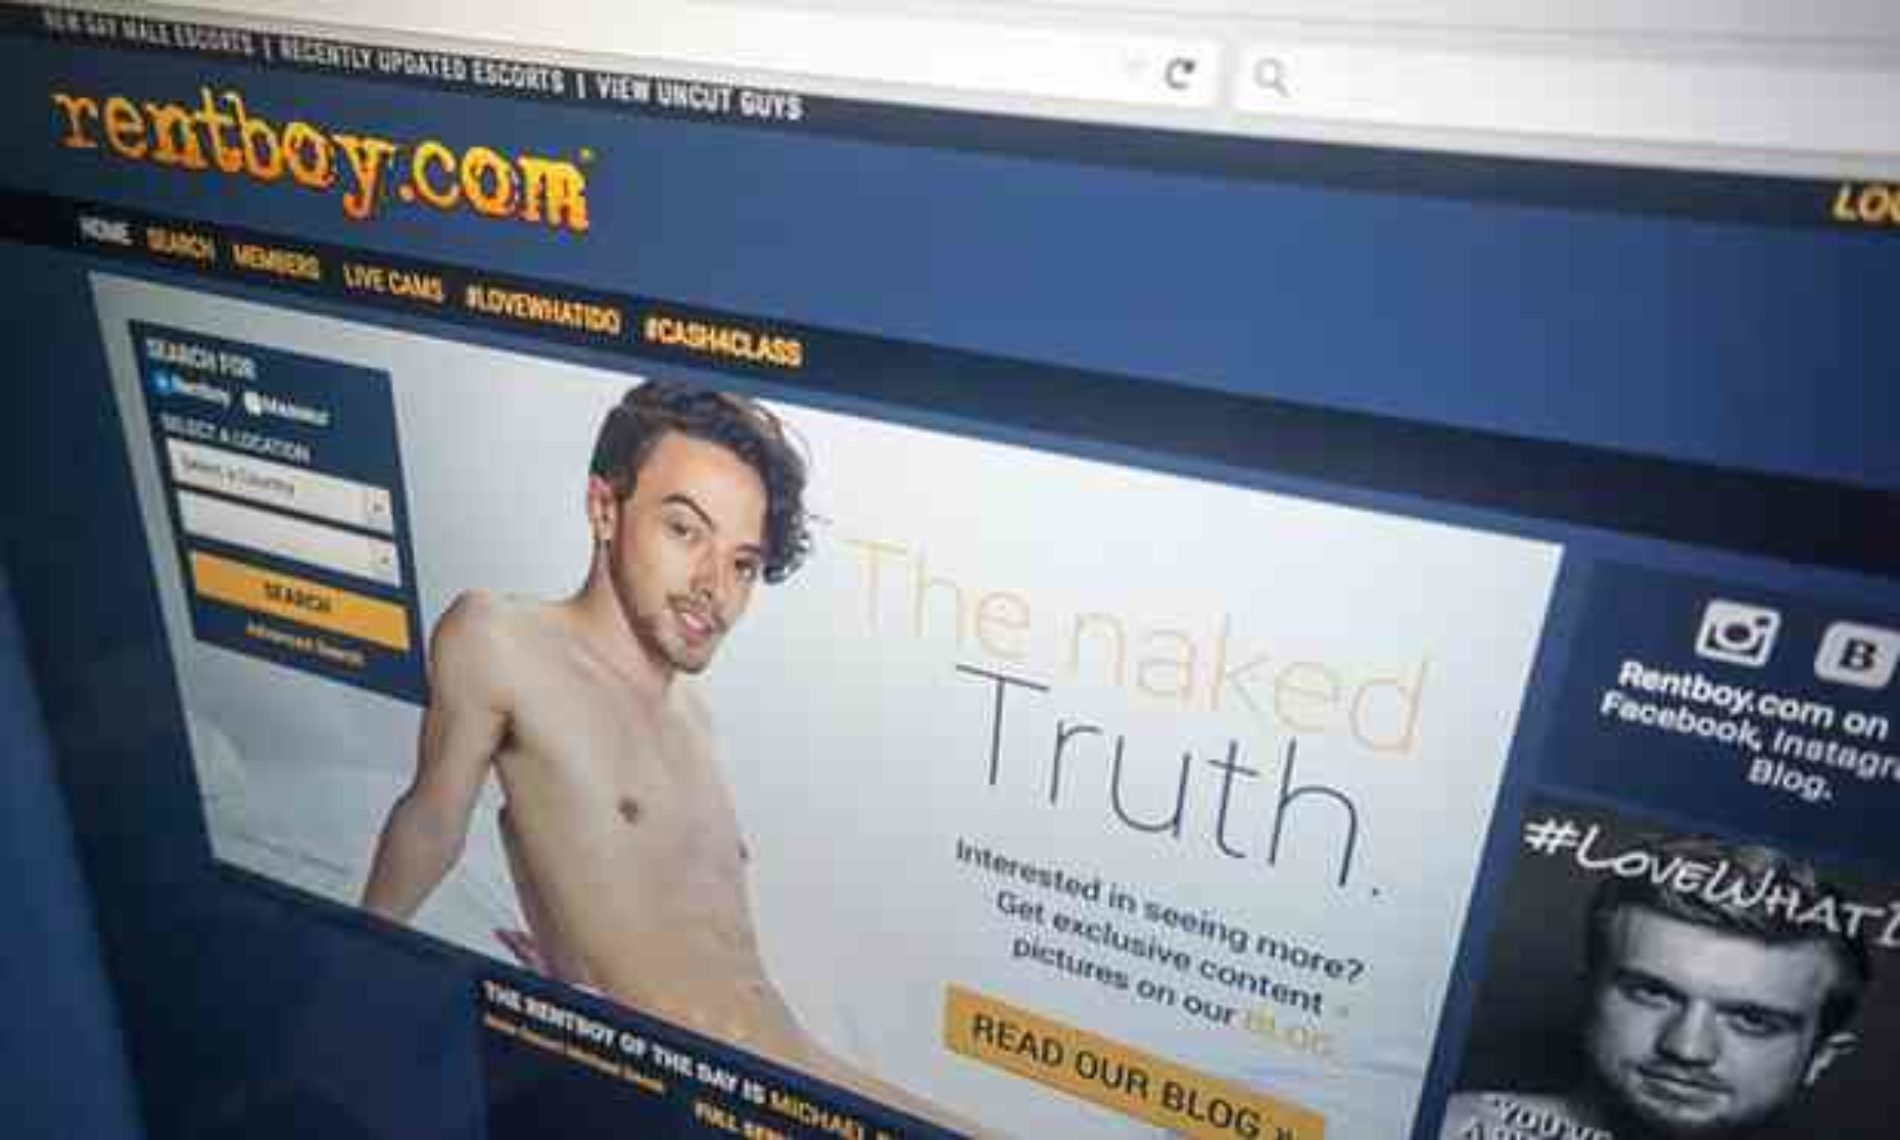 Rentboy.com Is Shut Down In Prostitution Sting, Michael Lucas Speaks Out